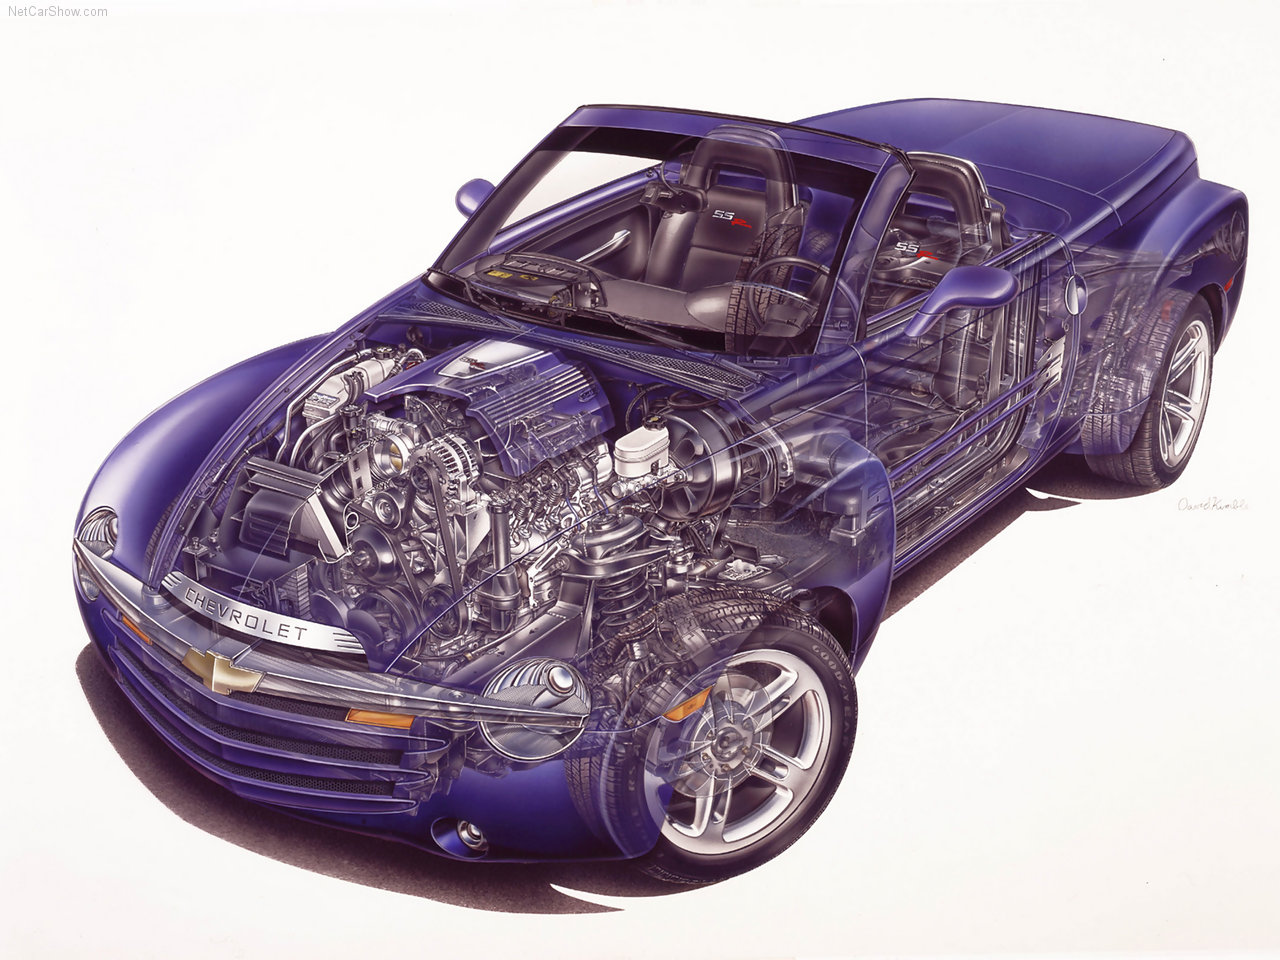 2003 Chevrolet SSR technical view